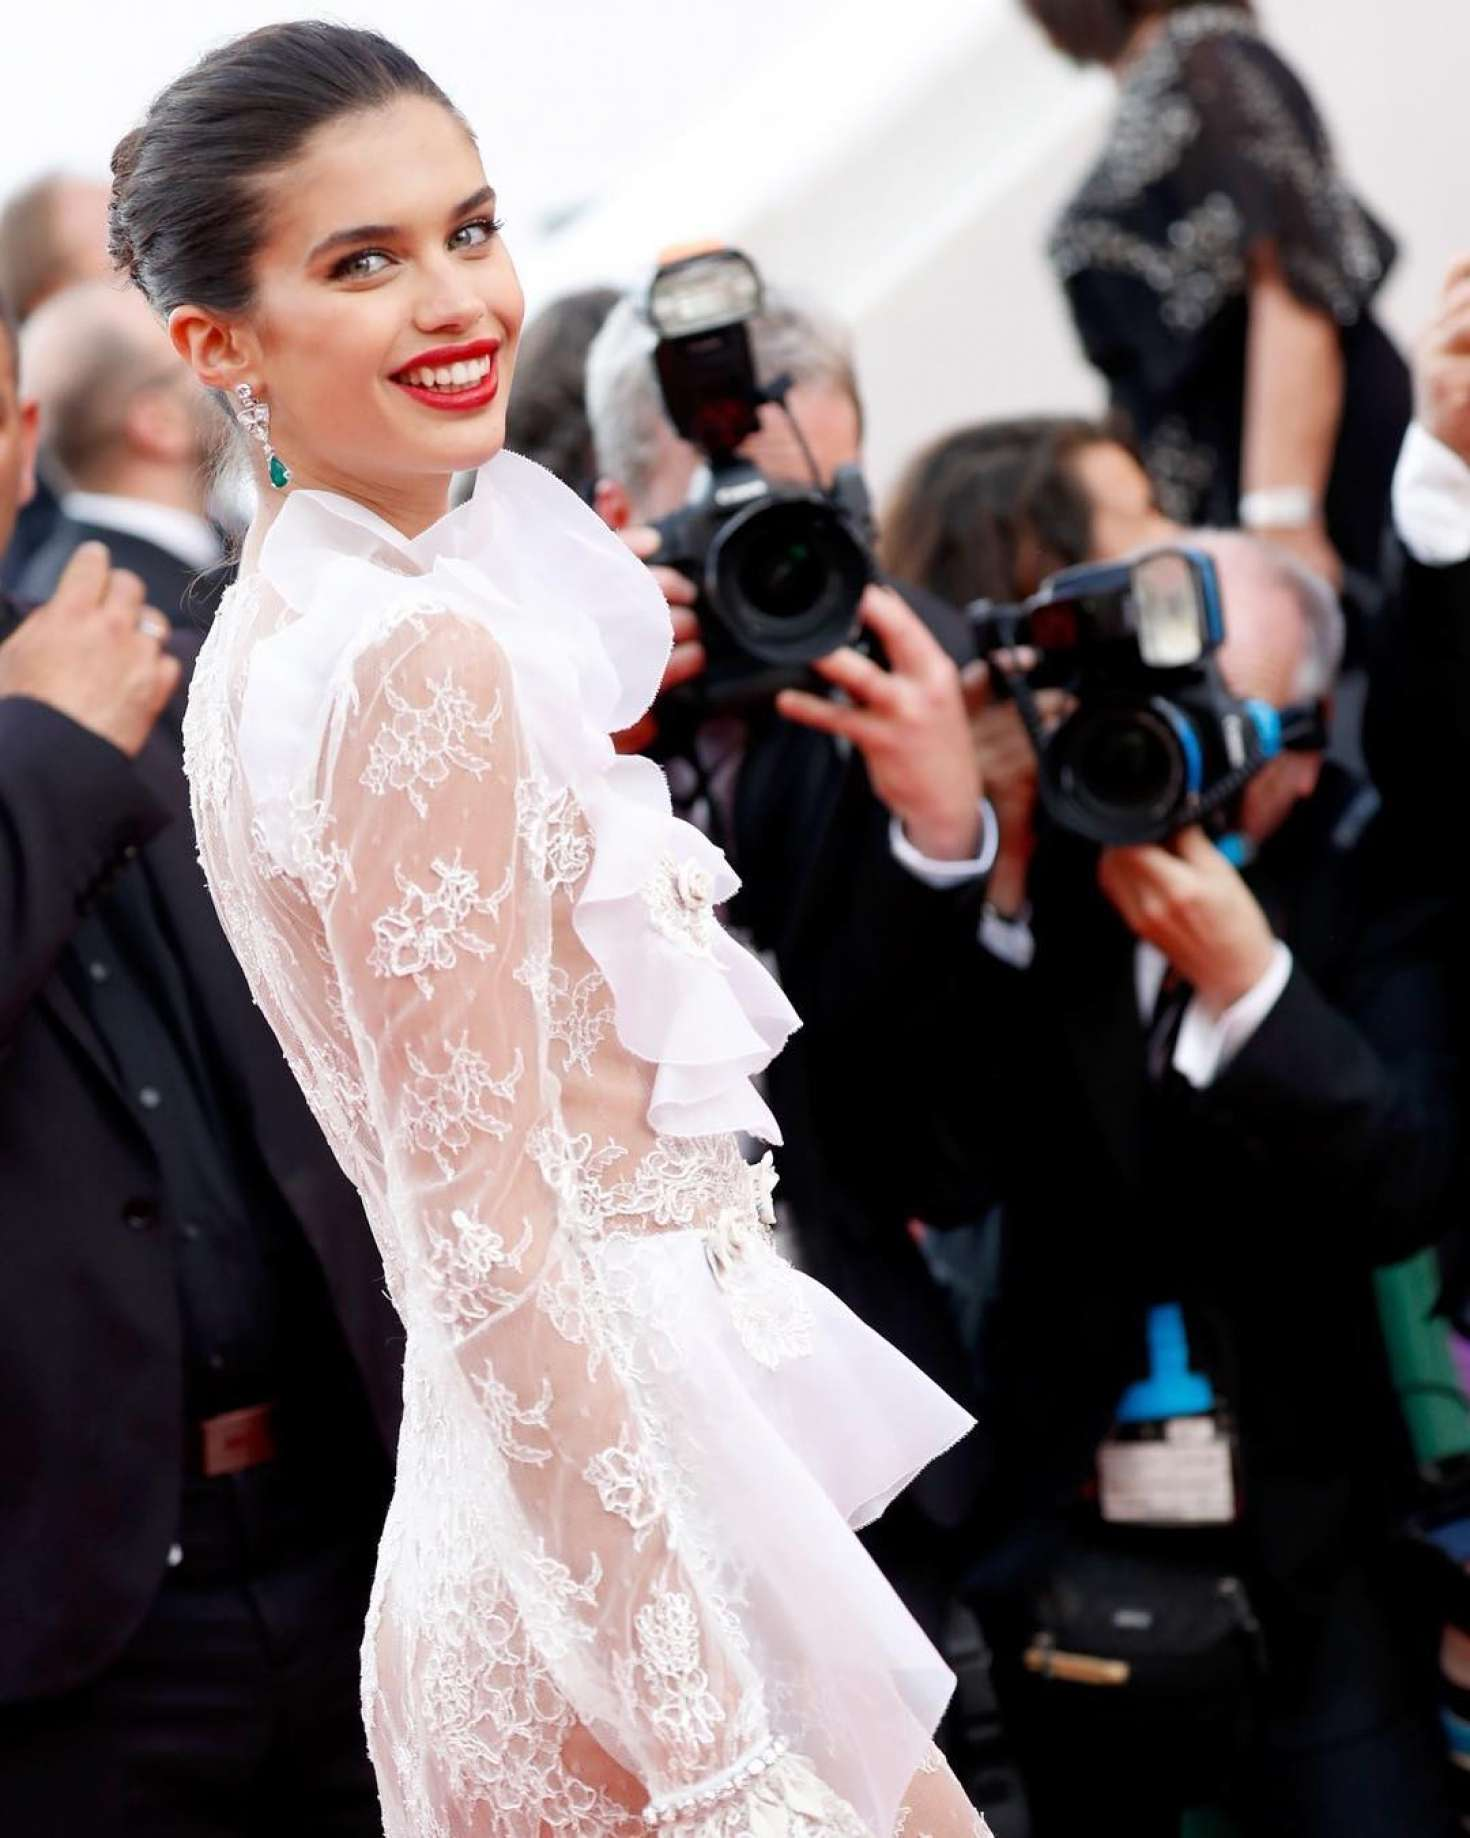 Sara Sampaio – 'The Killing of a Sacred Deer' Premiere at 70th Cannes Film Festival   Sara-Sampaio:-The-Killing-of-a-Sacred-Deer-Premiere-at-70th-Cannes-Film-Festival--02